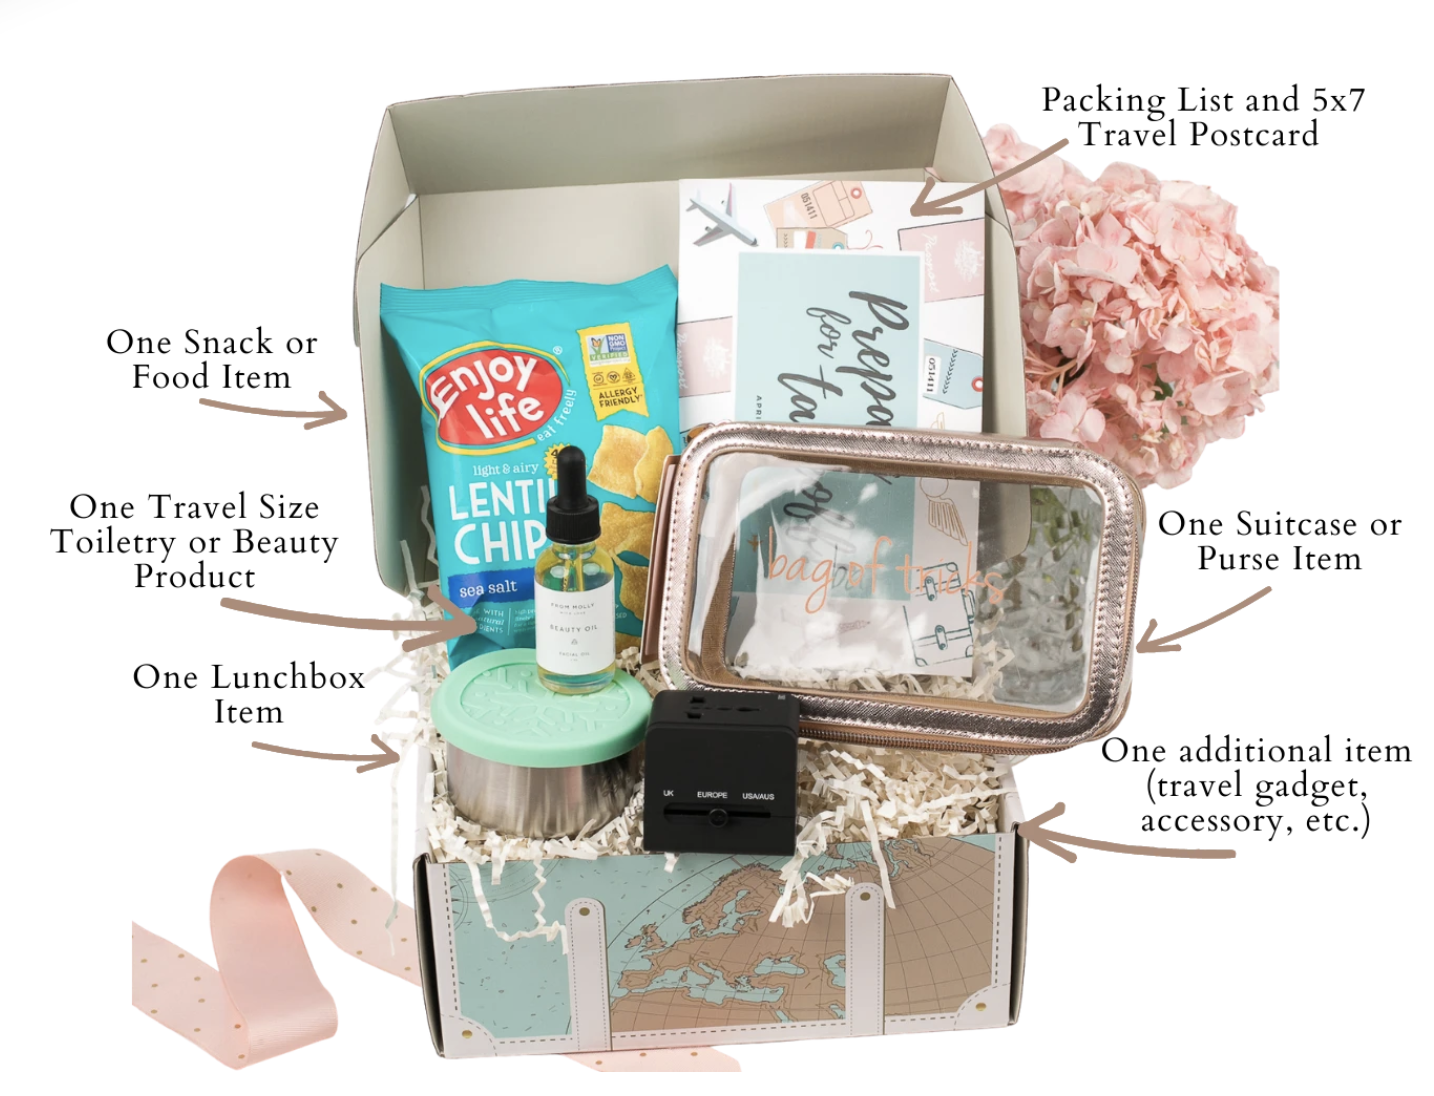 An open box with a globe design is filled with things like a packaged snack, face oil, clear travel pack, and more with overlaid text and arrows explaining the items